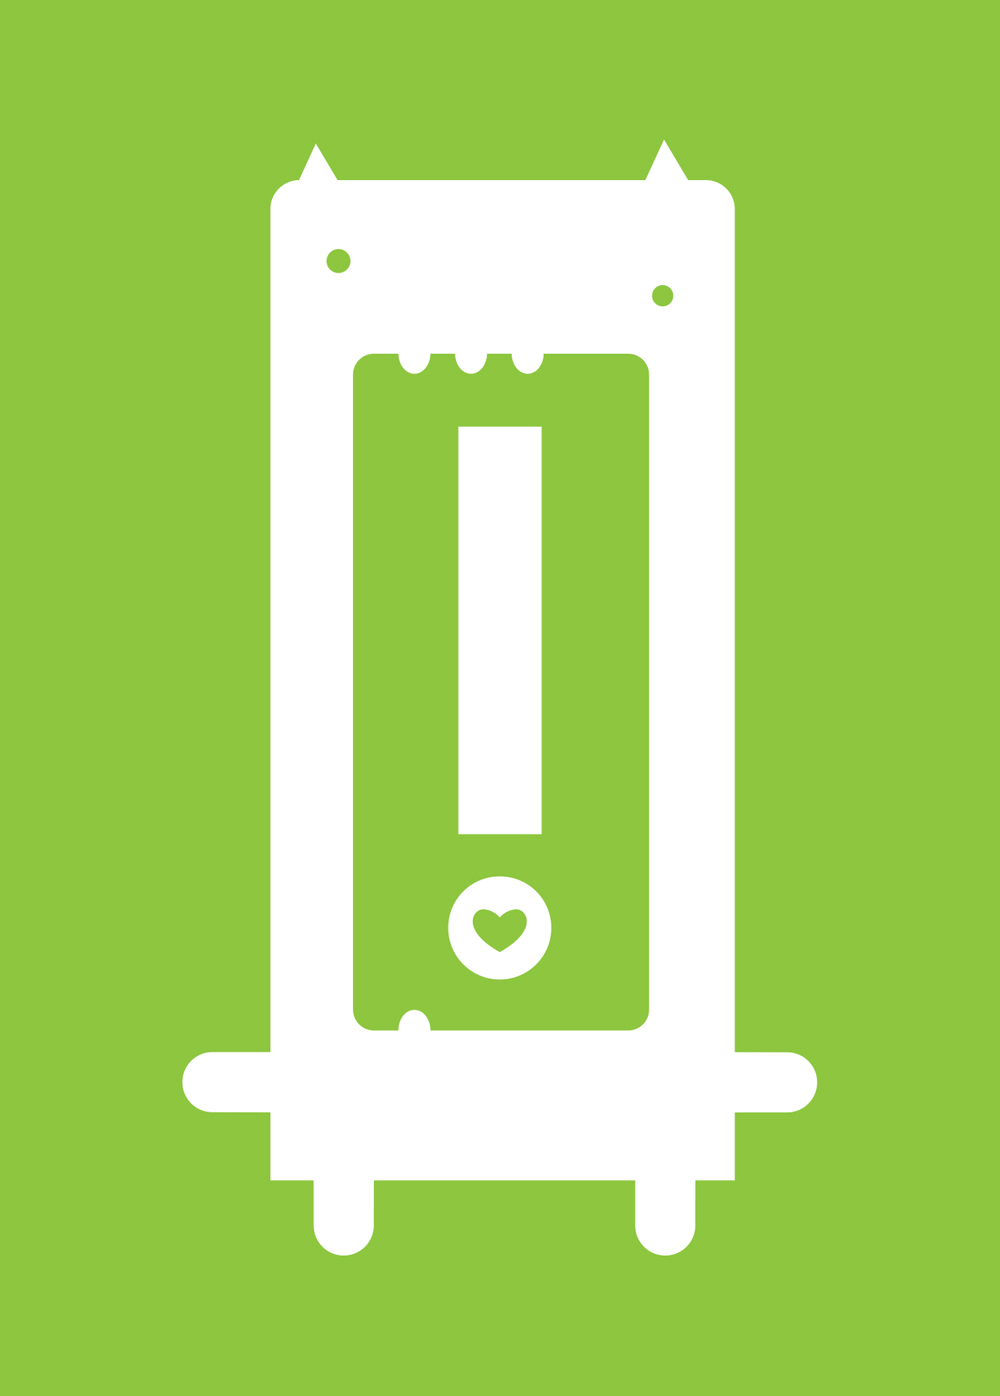 Card_Five_Heart.jpg